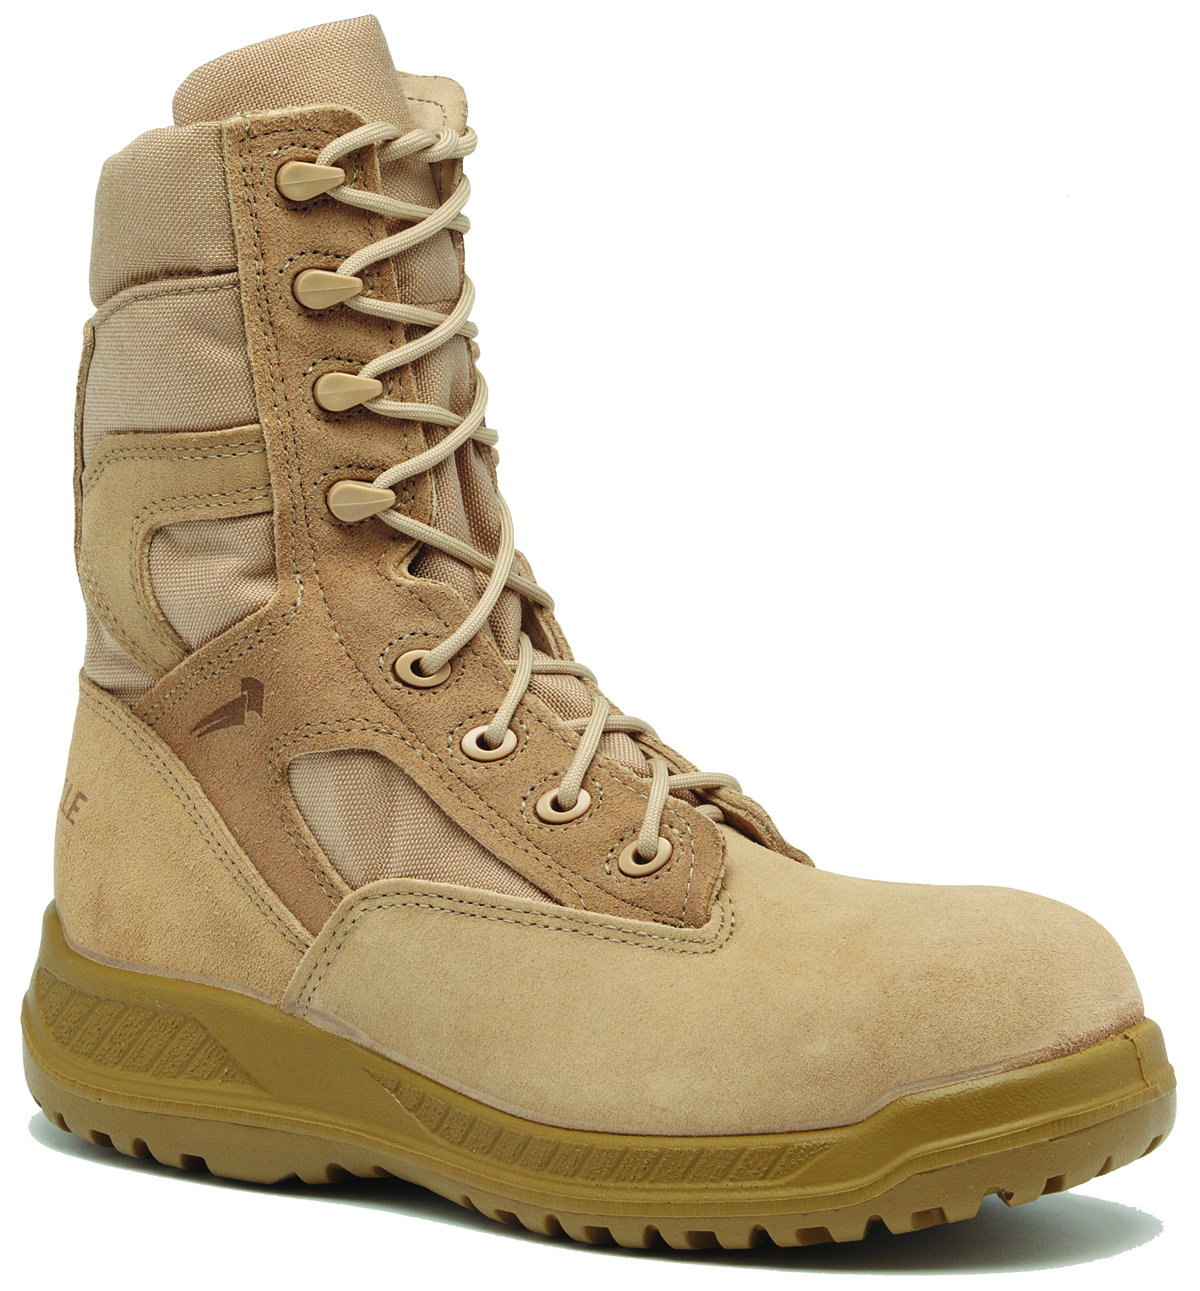 4246226aa6a6 Belleville Boots 310 ST Men s Hot Weather Steel Toe Tactical Boots